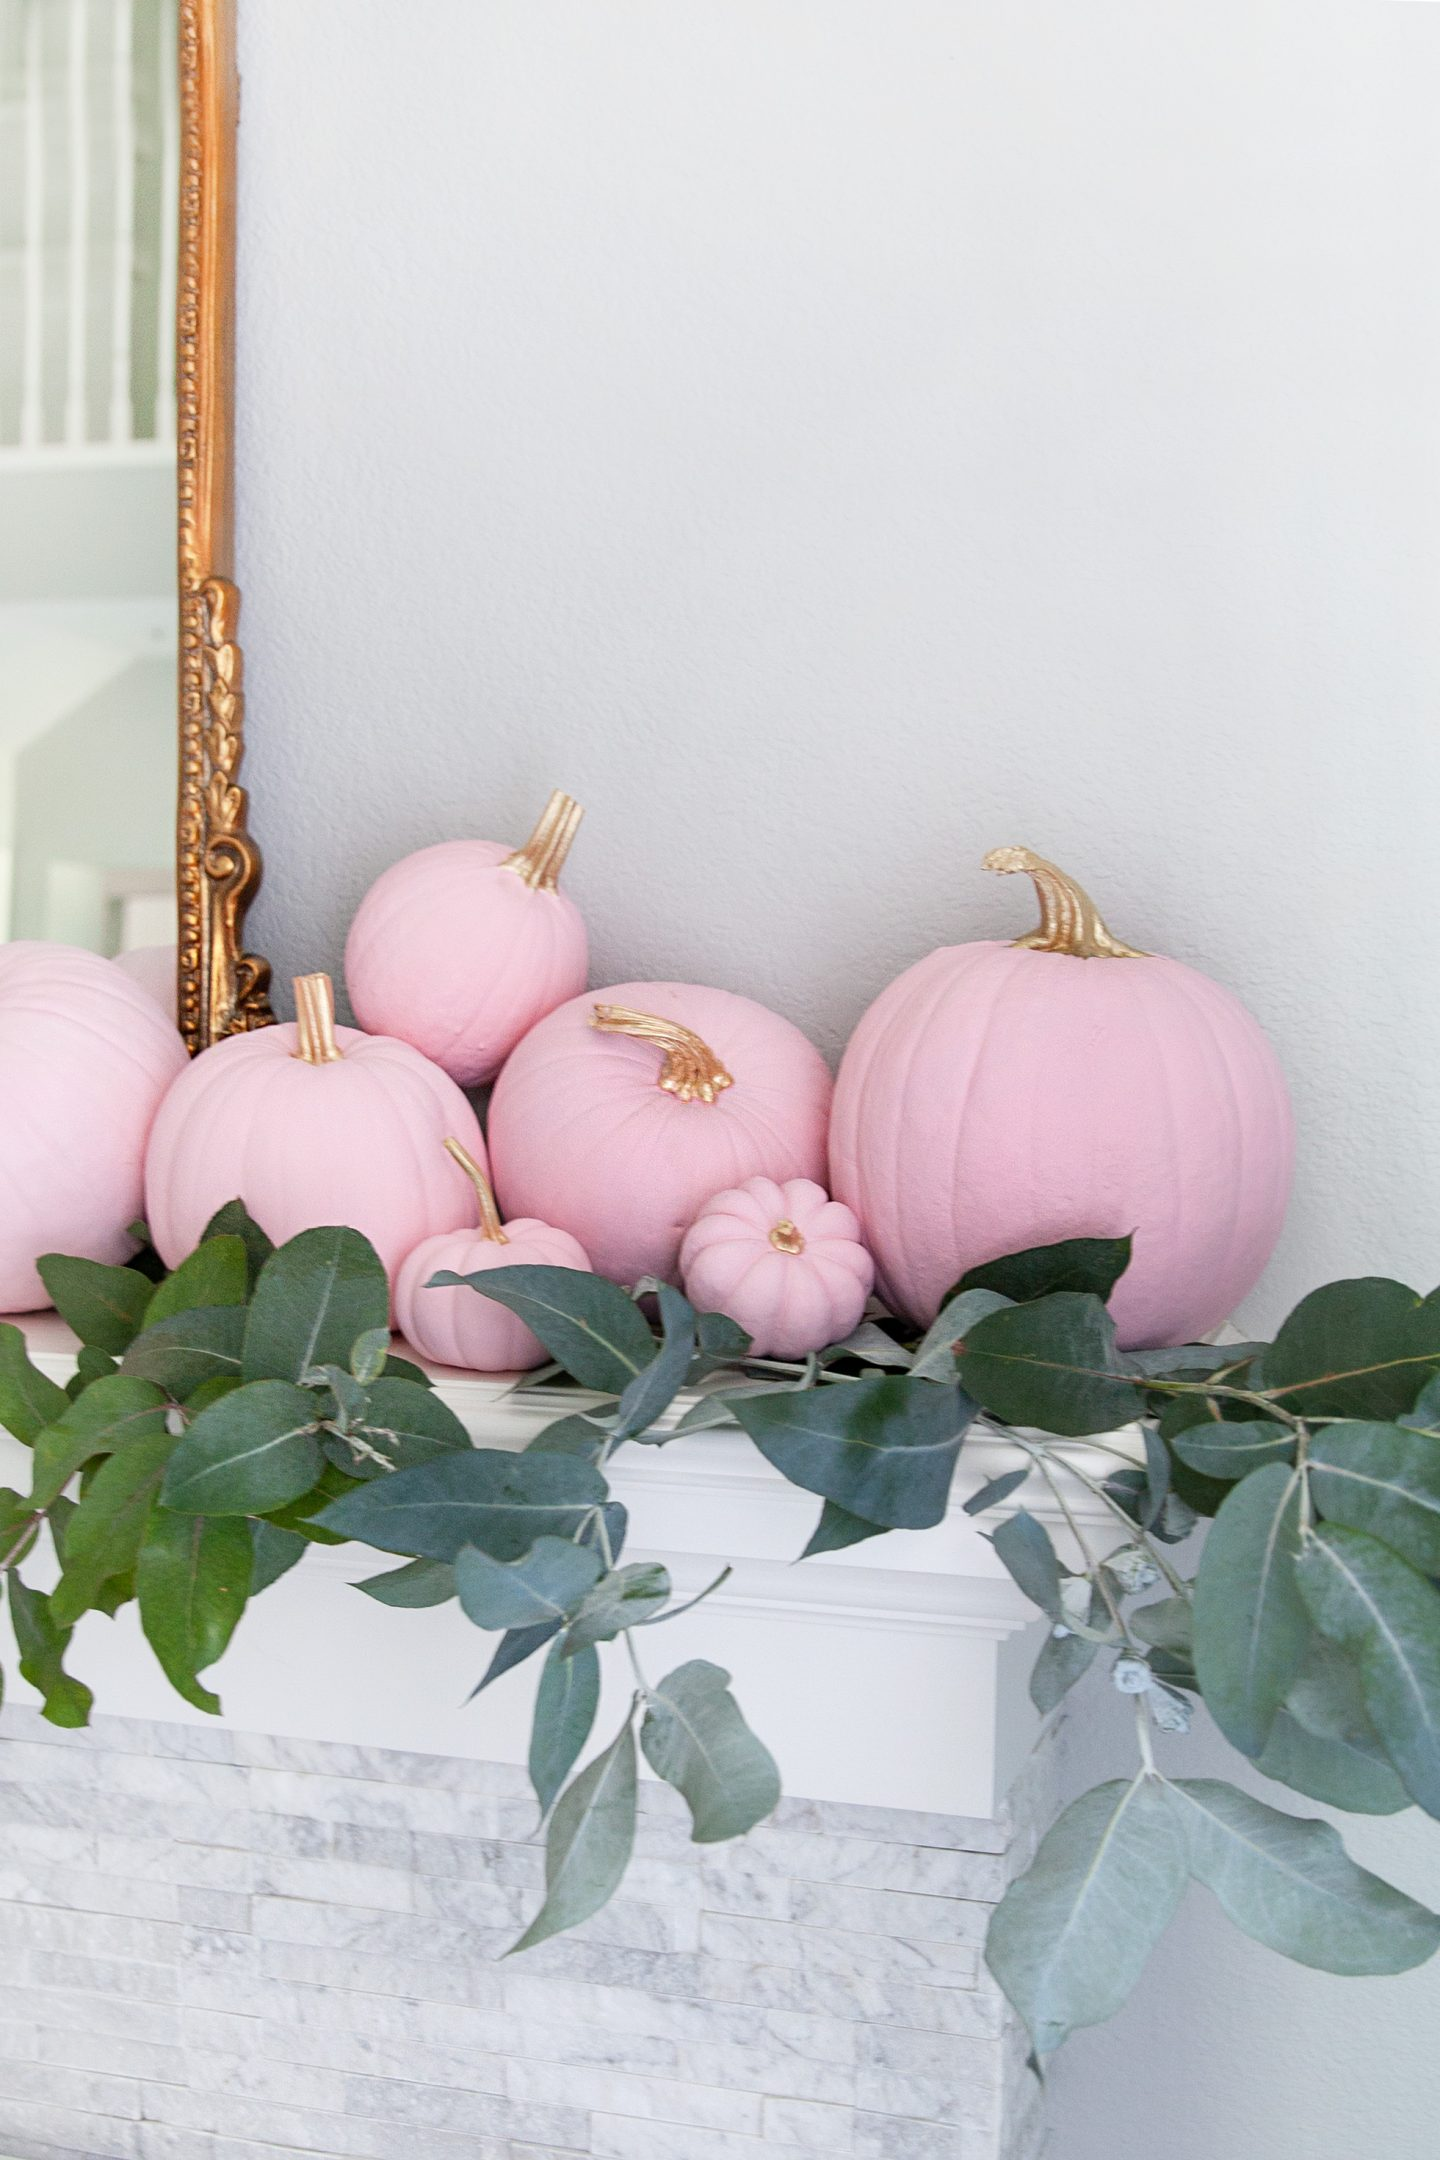 simple pumpkin diy decor tutorial | 5 Step Super Easy Ombre Pink Pumpkin Decor Tutorial featured by top San Francisco lifestyle blog, Lombard & Fifth